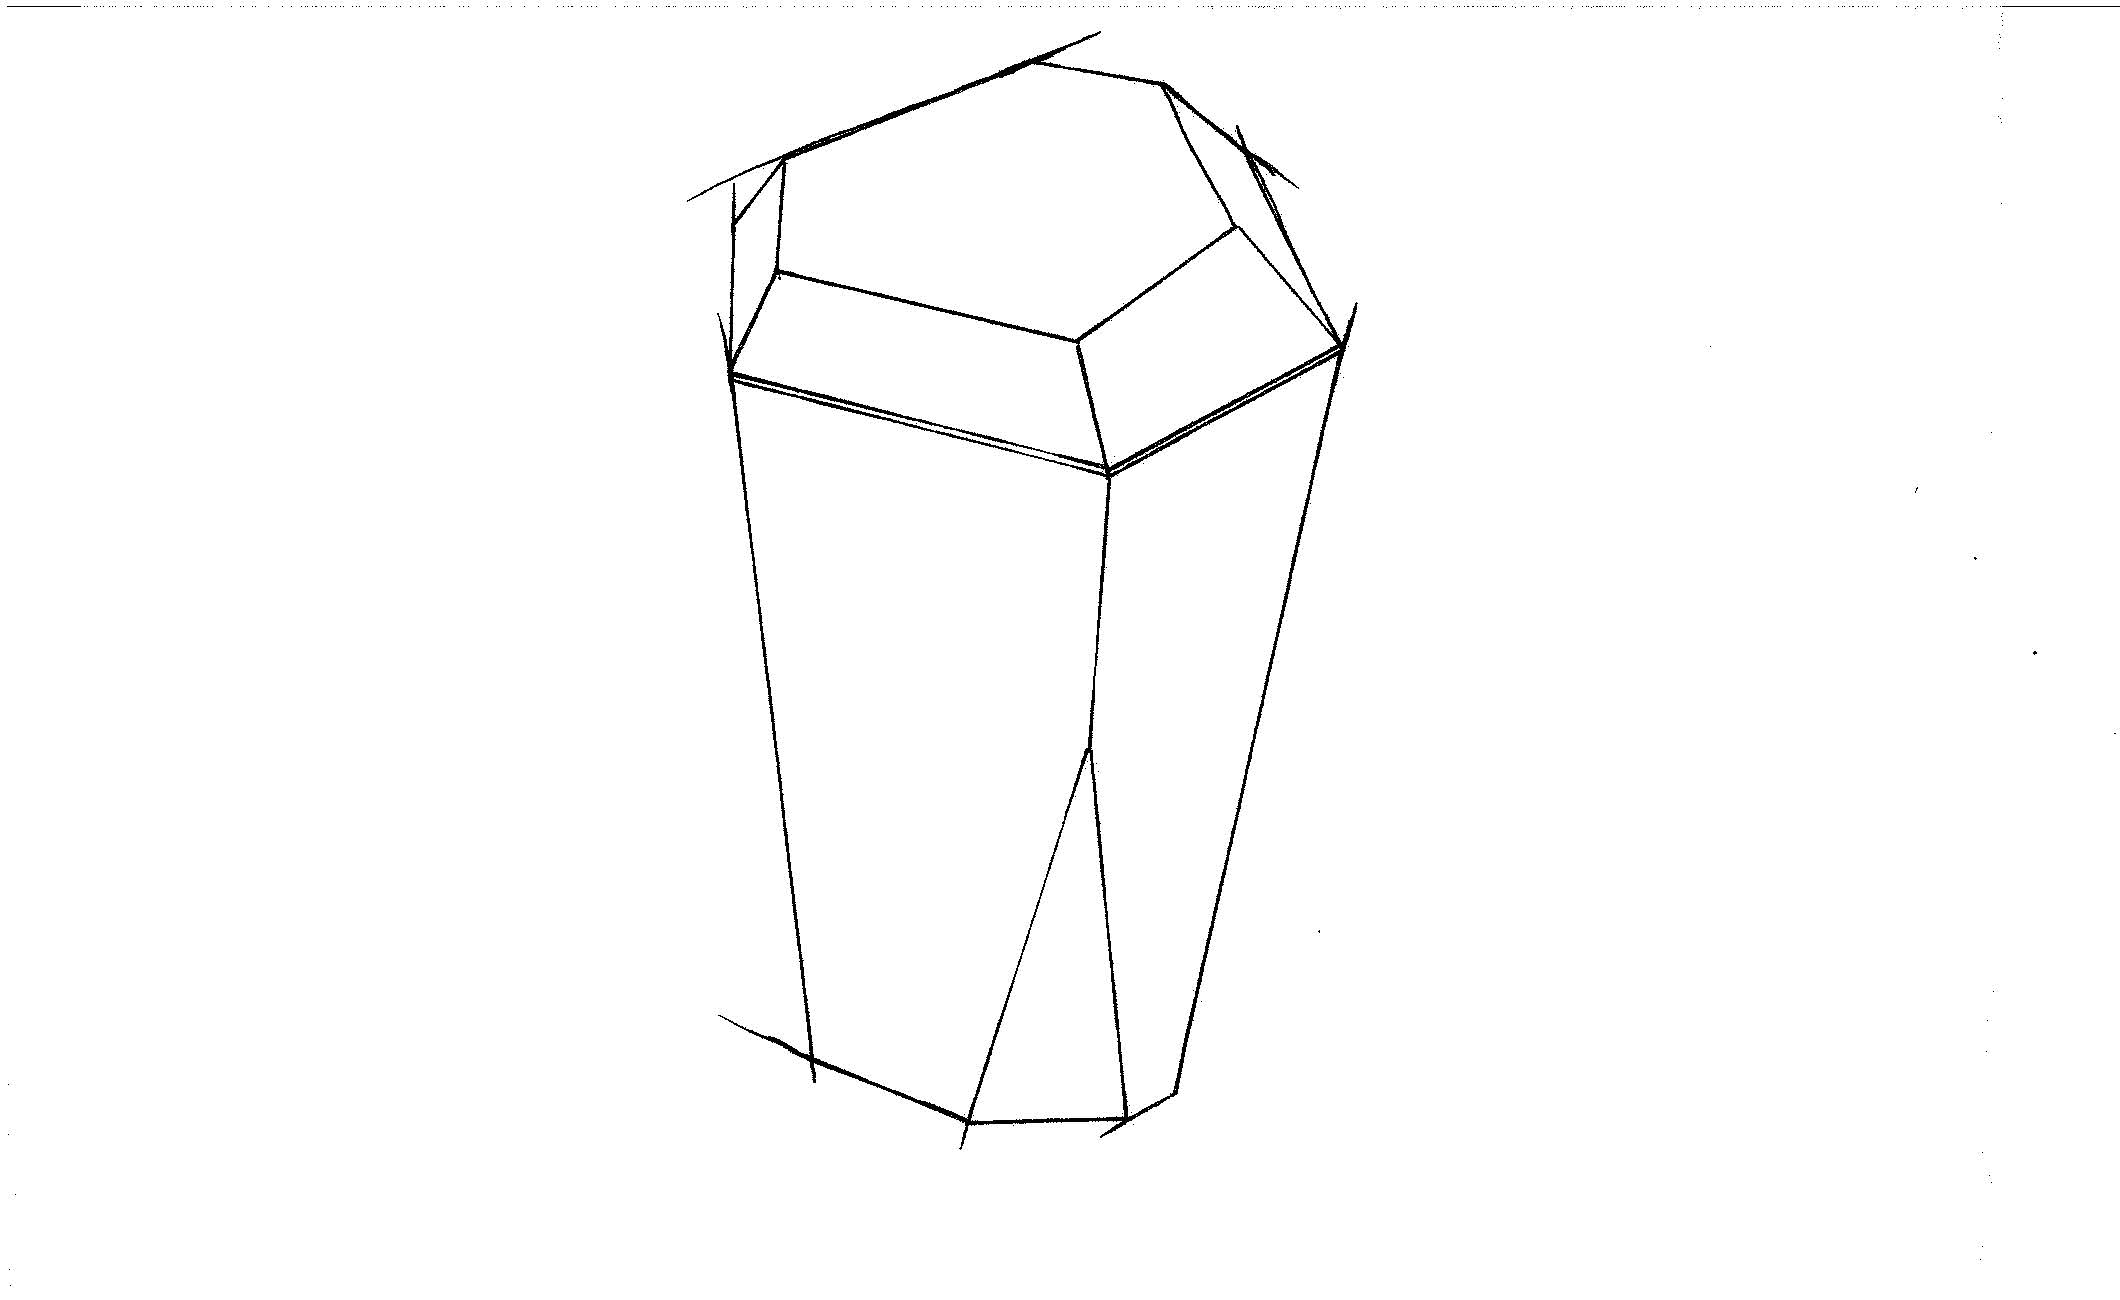 Sketch of Canister